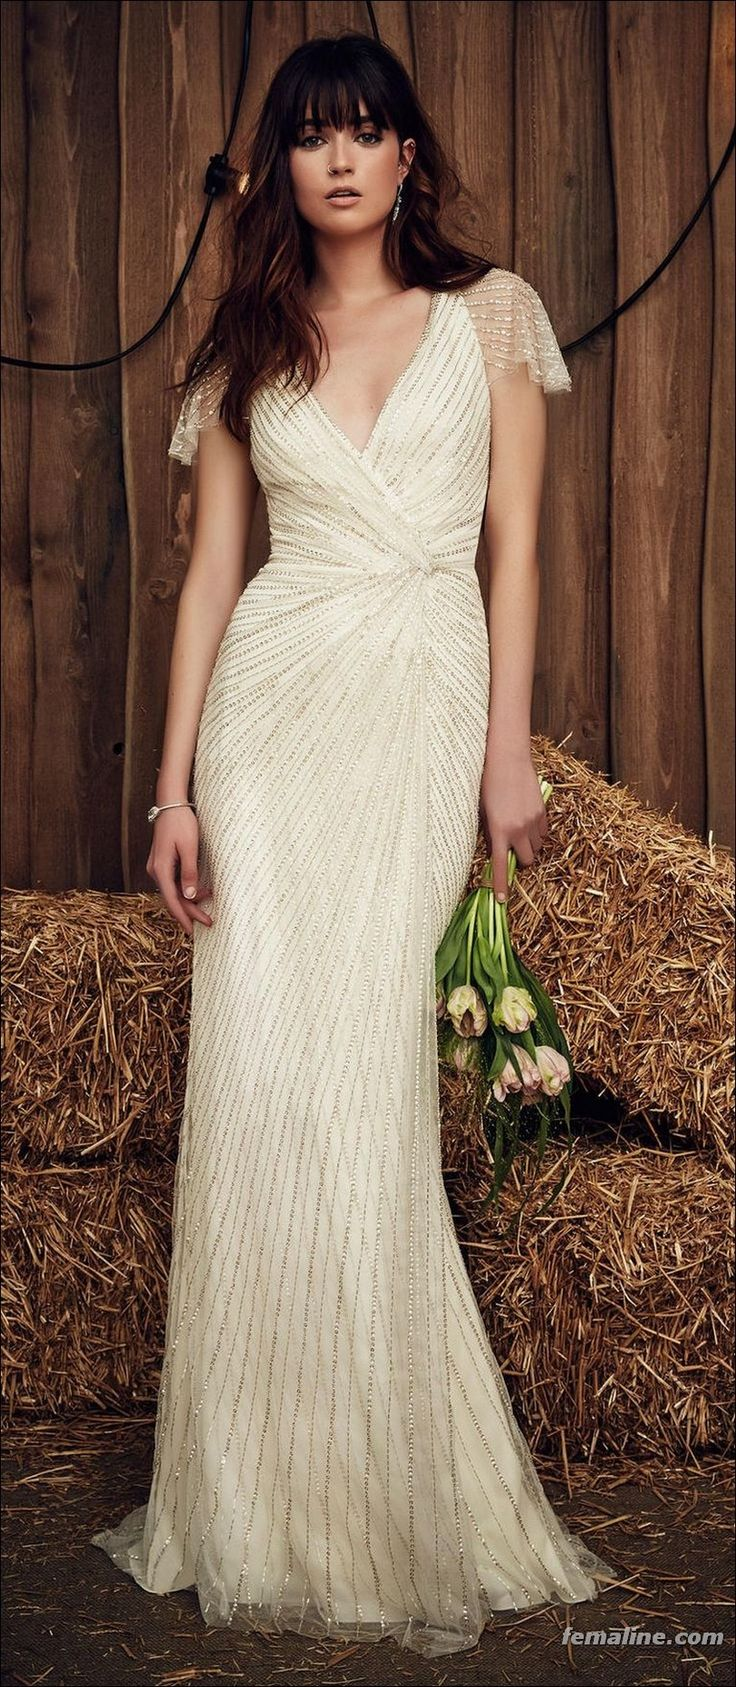 8 best kleider images on Pinterest | Short wedding dresses, Short ...